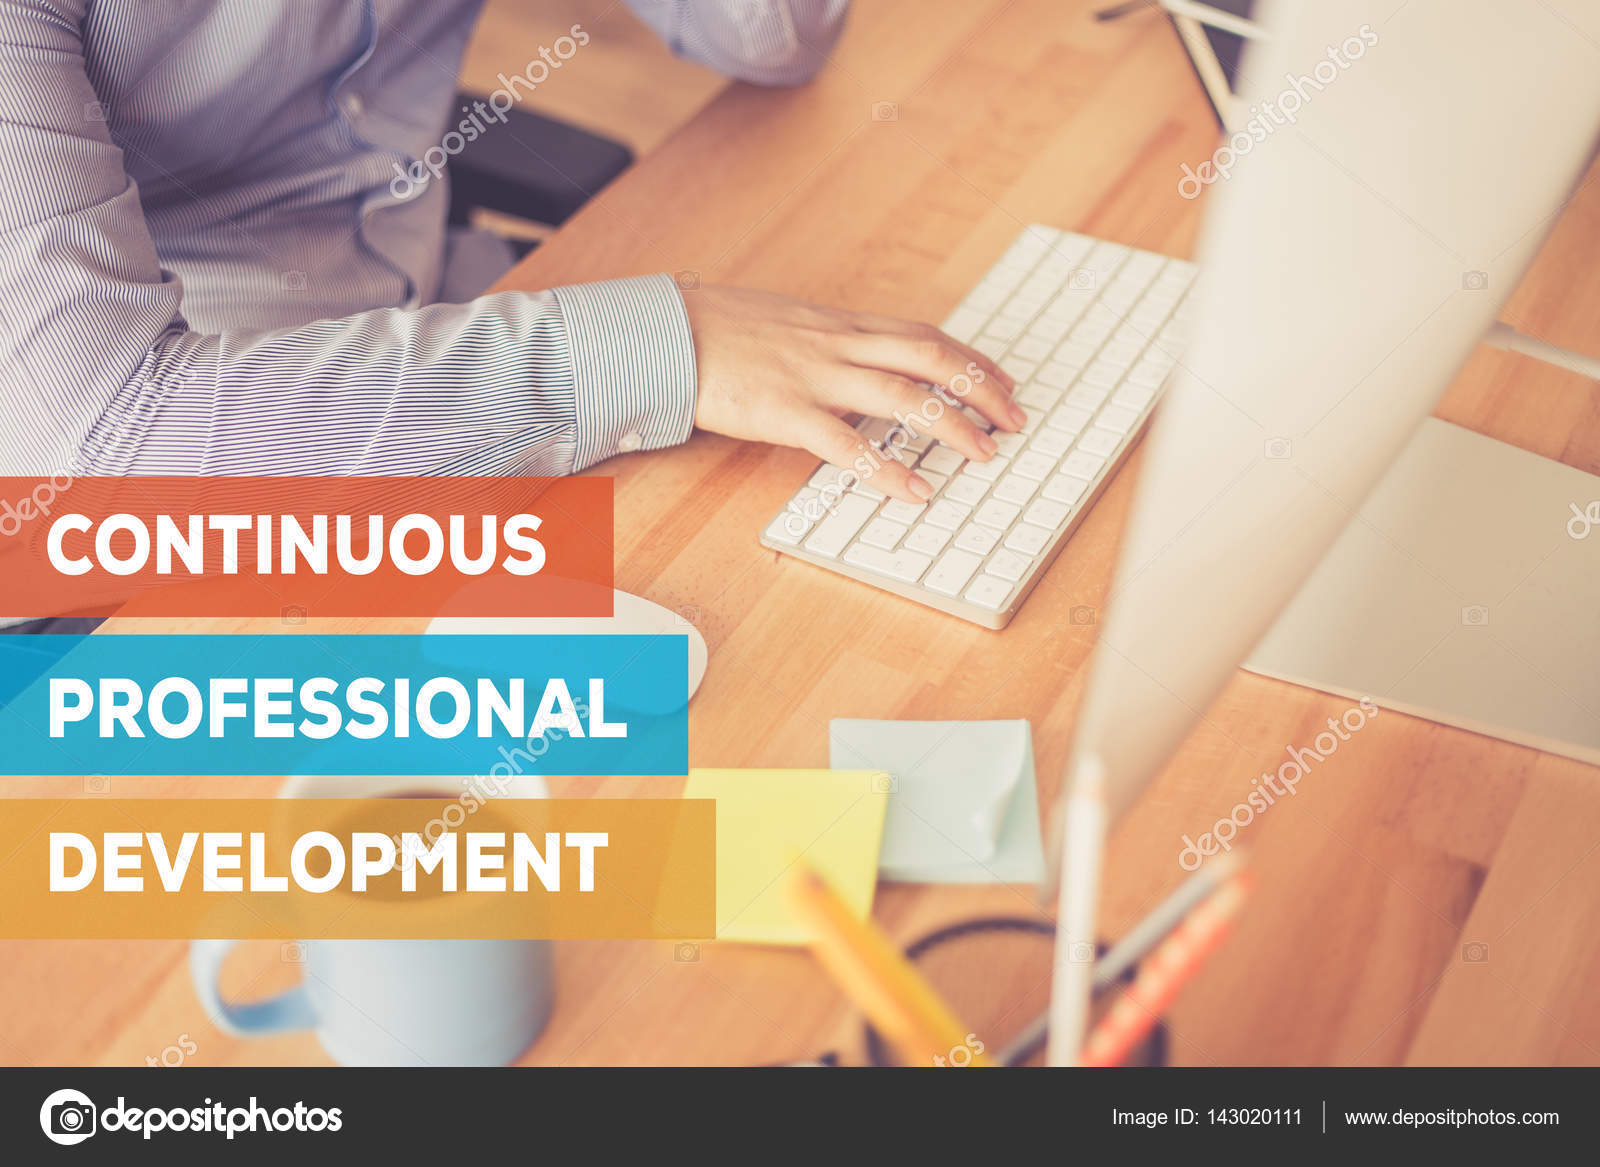 continuous professional development Continuous professional development   what can give you the professional edge in a competitive world if you are looking to keep your.